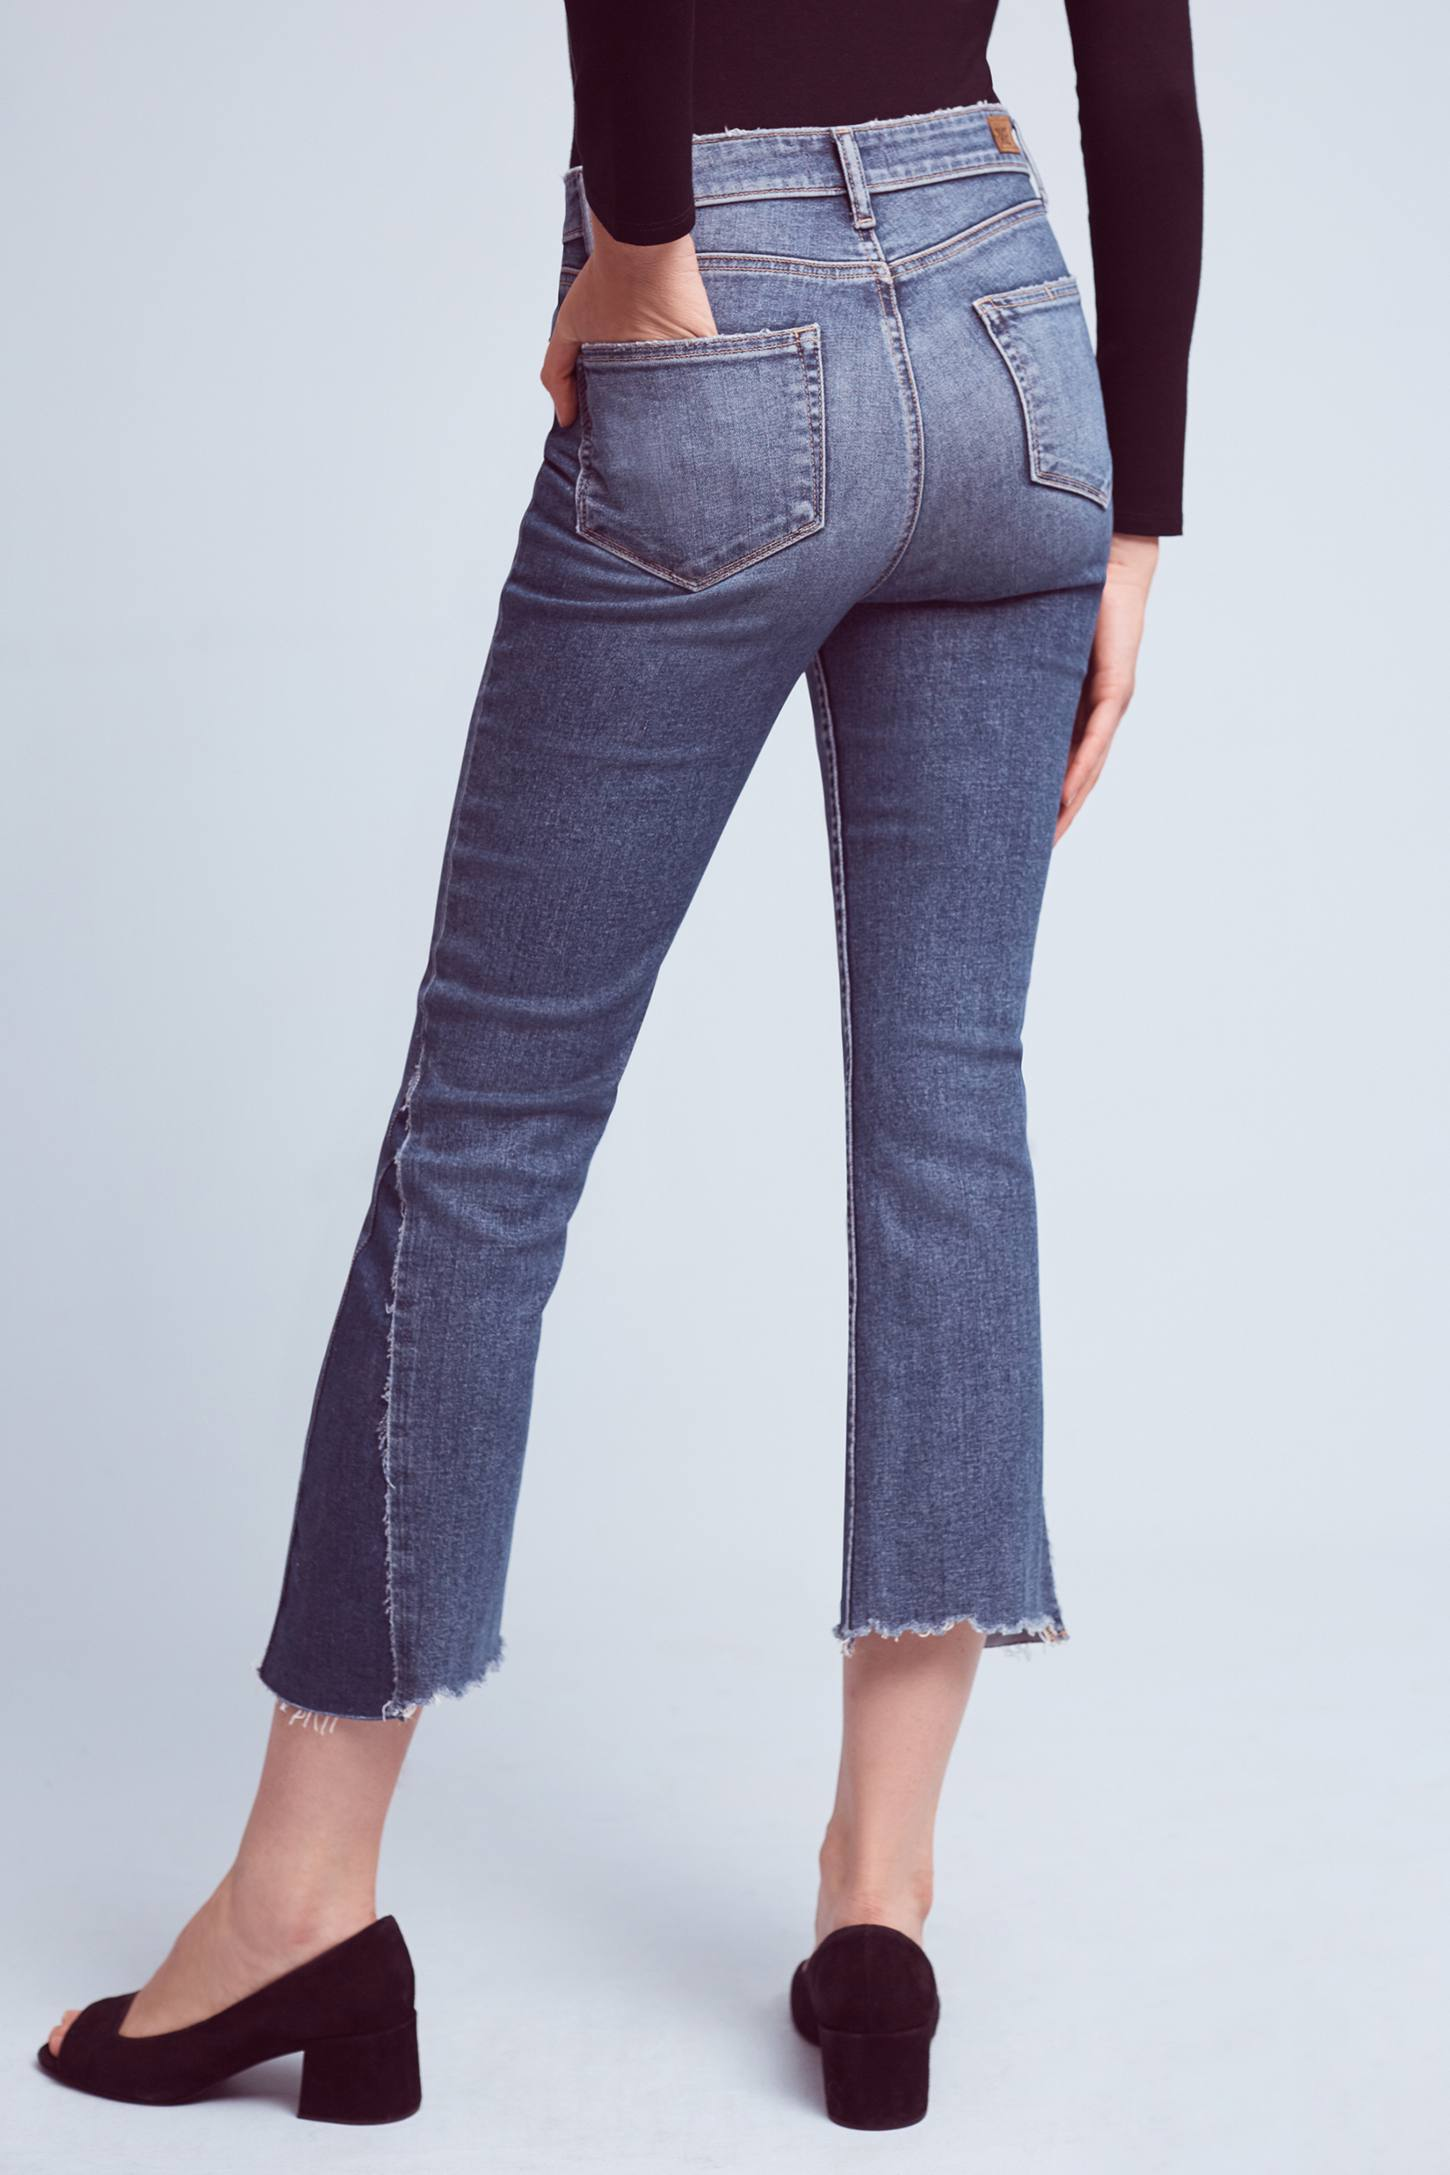 Paige Colette Low-Rise Cropped Flare Jeans | Anthropologie